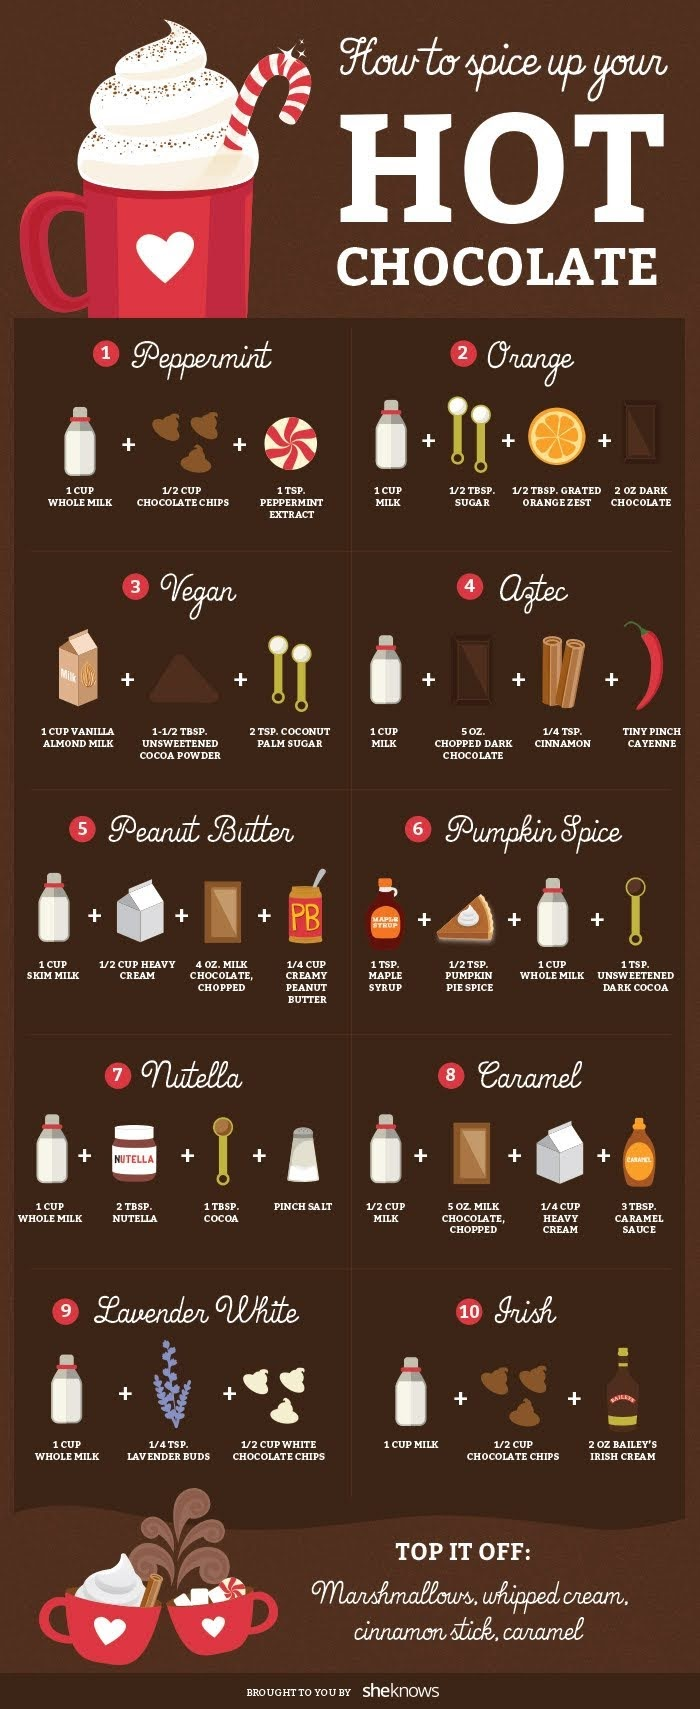 18 Hot Chocolate Recipes That Will Change the Way You Feel About Winter #infographic 18 Hot Chocolate Recipes That Will Change the Way You Feel About Winter #infographic